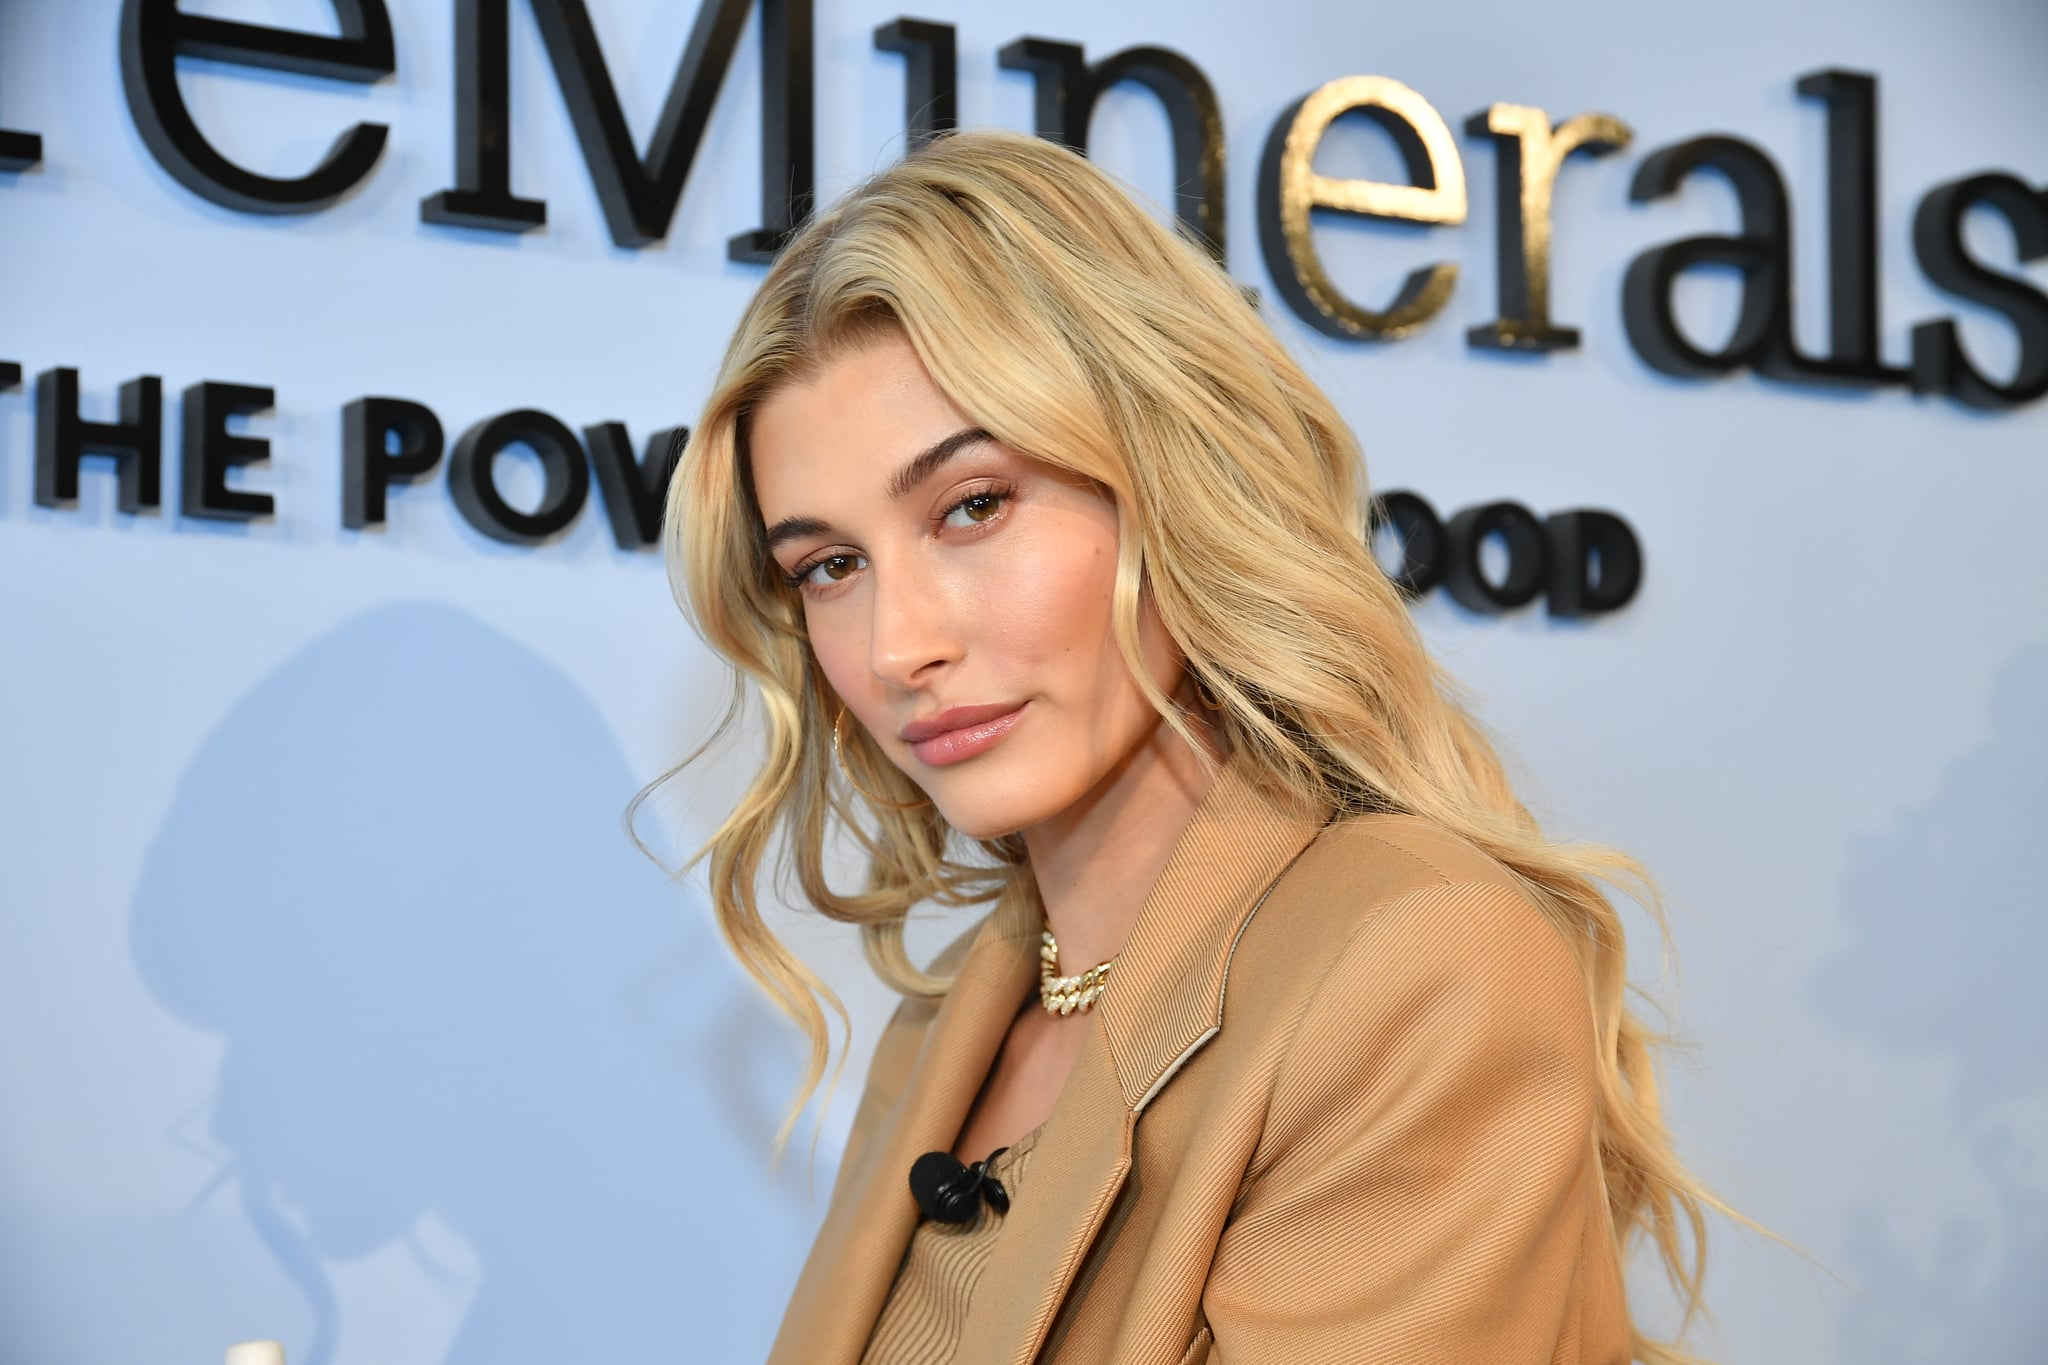 - Los Angeles, CA - 02/06/2019 - Hailey Baldwin for bareMinerals.-PICTURED: Hailey Baldwin-PHOTO by: Michael Simon/startraksphoto.com-MS63285Editorial - Rights Managed Image - Please contact www.startraksphoto.com for licencing fee Startraks PhotoStartraks PhotoNew York, NY For licencing please call 212-414-9464 or email sales@startraksphoto.comImage may not be published in any way that is or might be deemed defamatory, libelous, pornographic, or obscene. Please consult our sales department for any clarification or question you may haveStartraks Photo reserves the right to pursue unauthorized users of this image. If you violate our intellectual property you may be liable for actual damages, loss of income, and profits you derive from the use of this image, and where appropriate, the cost of collection and/or statutory damages.